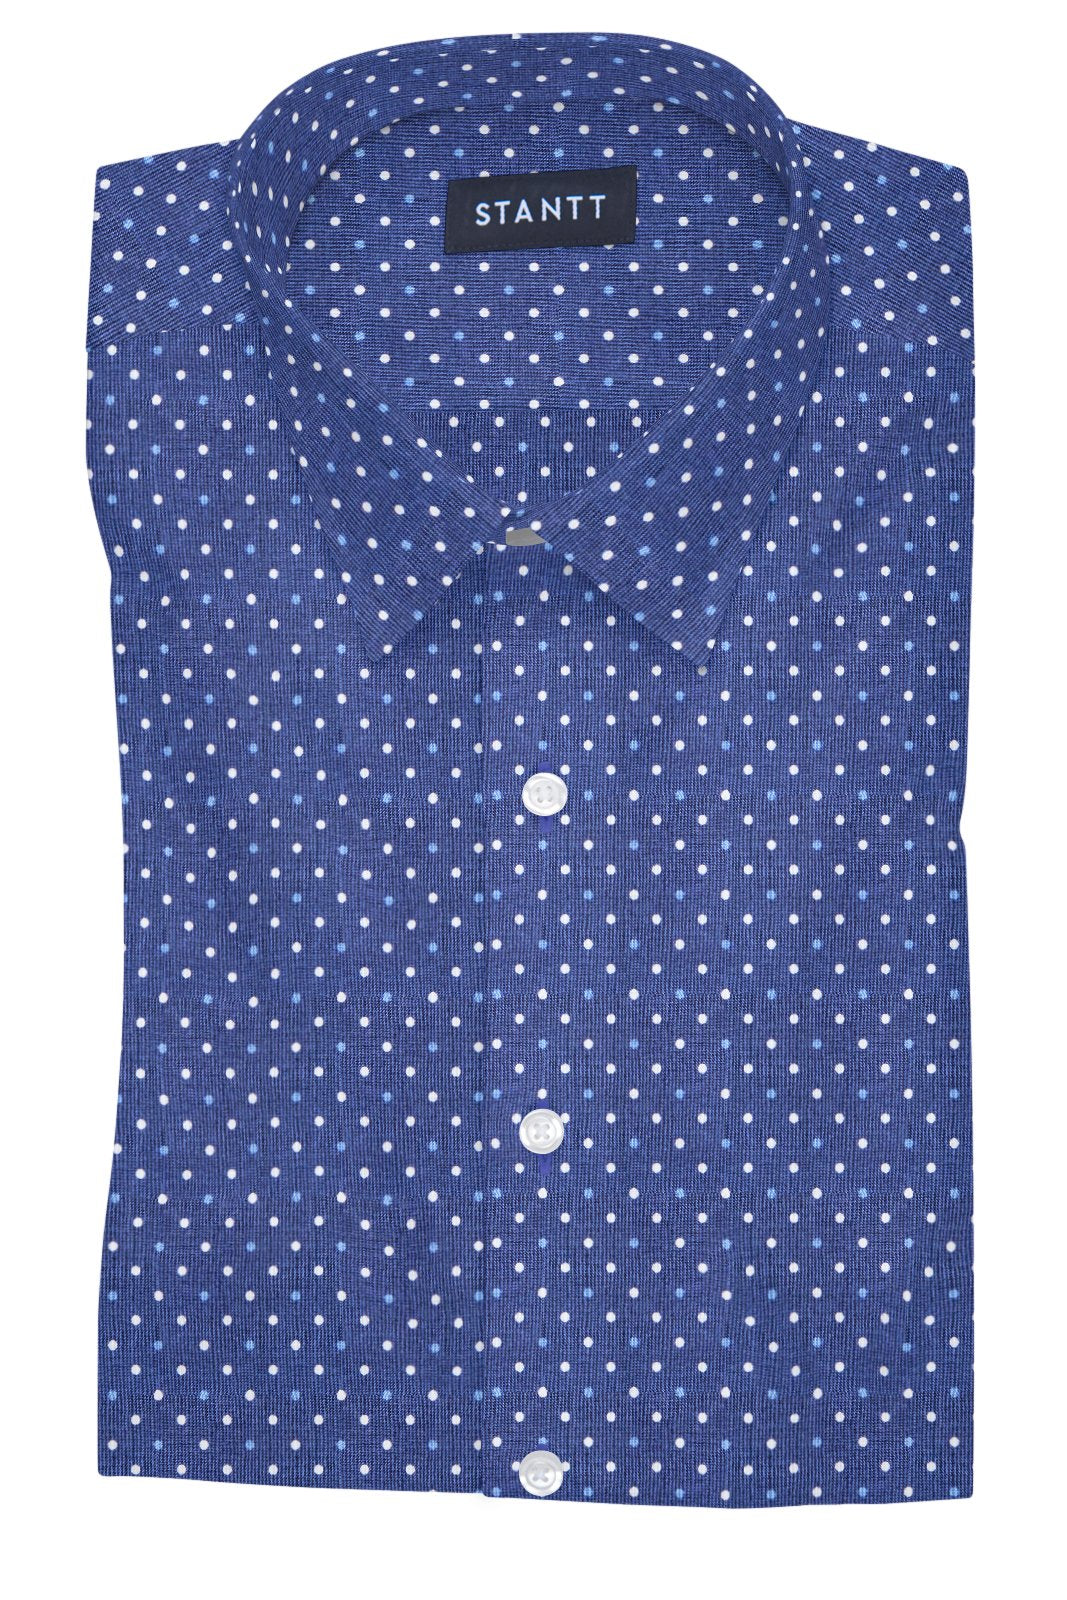 Navy and White Contemporary Dots: Semi-Spread Collar, French Cuff